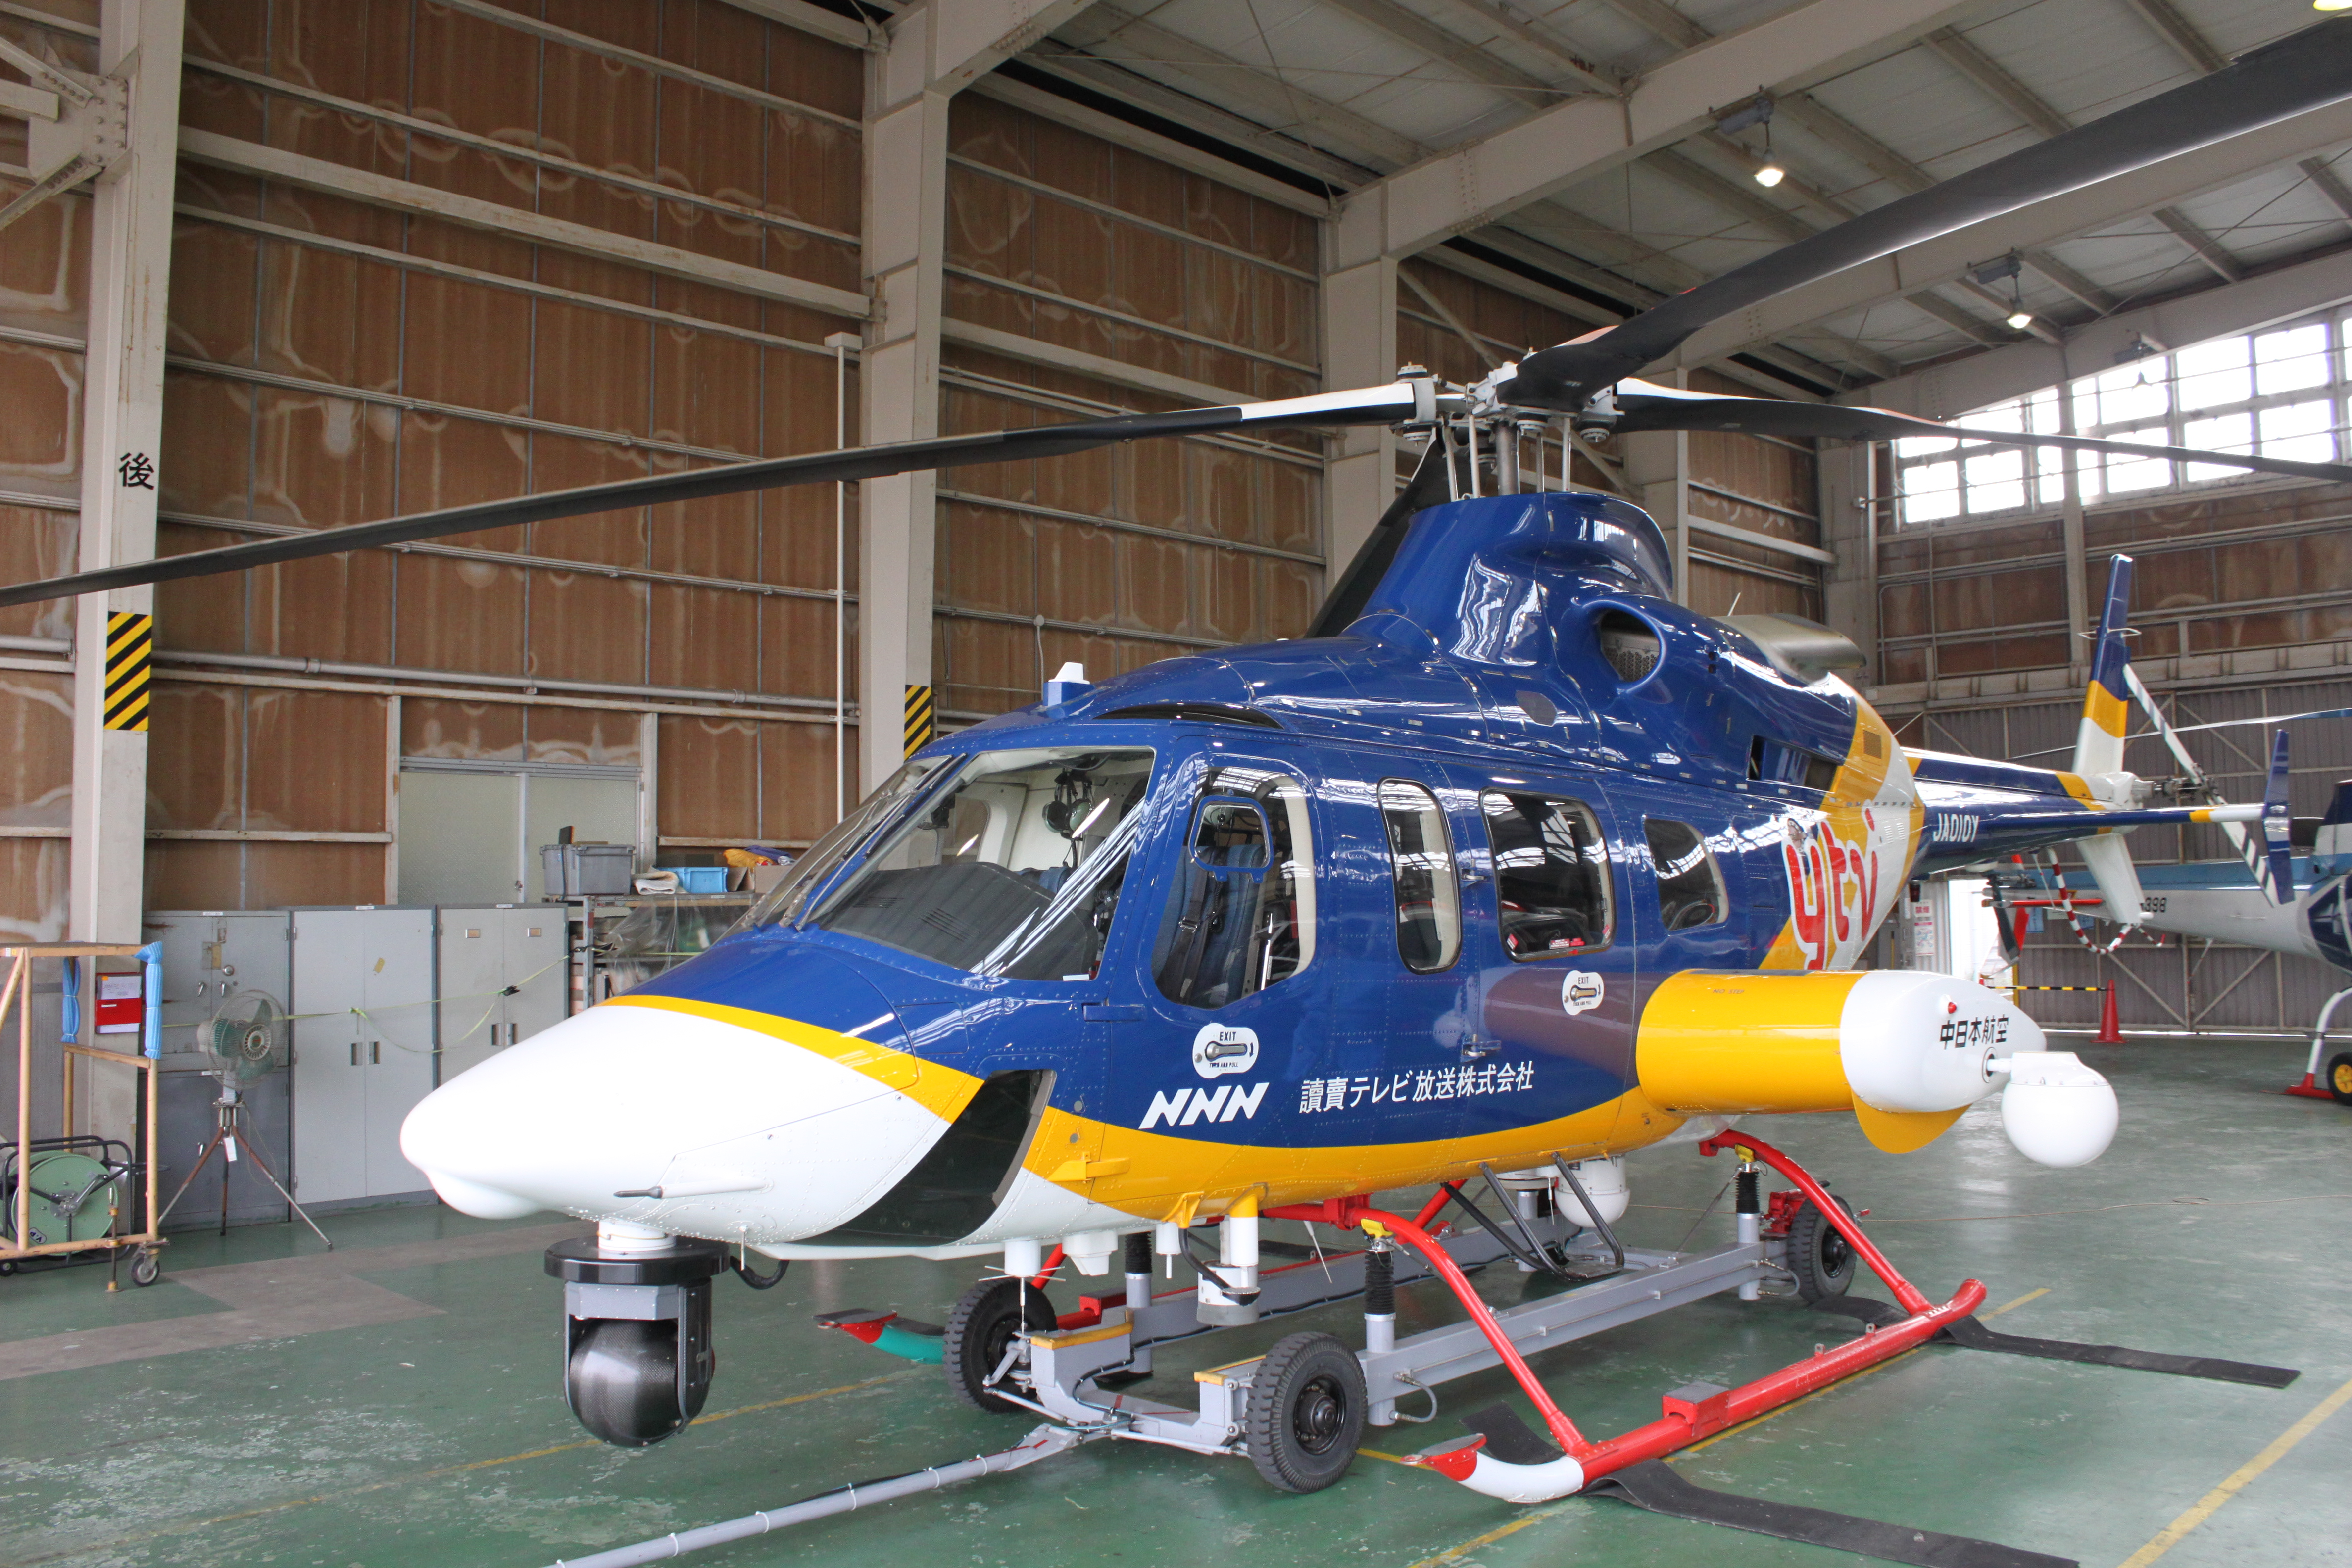 bell 430 helicopter with File Ja010y Bell 430  5249347927 on Pictures Of Luxury Helicopters furthermore Offshore Helicopter Crash Chevron Withholds Details as well 304724 Bell 412 407 Rotor Head besides Bell 430 Fuer Pht 3 Xl Marc furthermore 40hs rescue408.